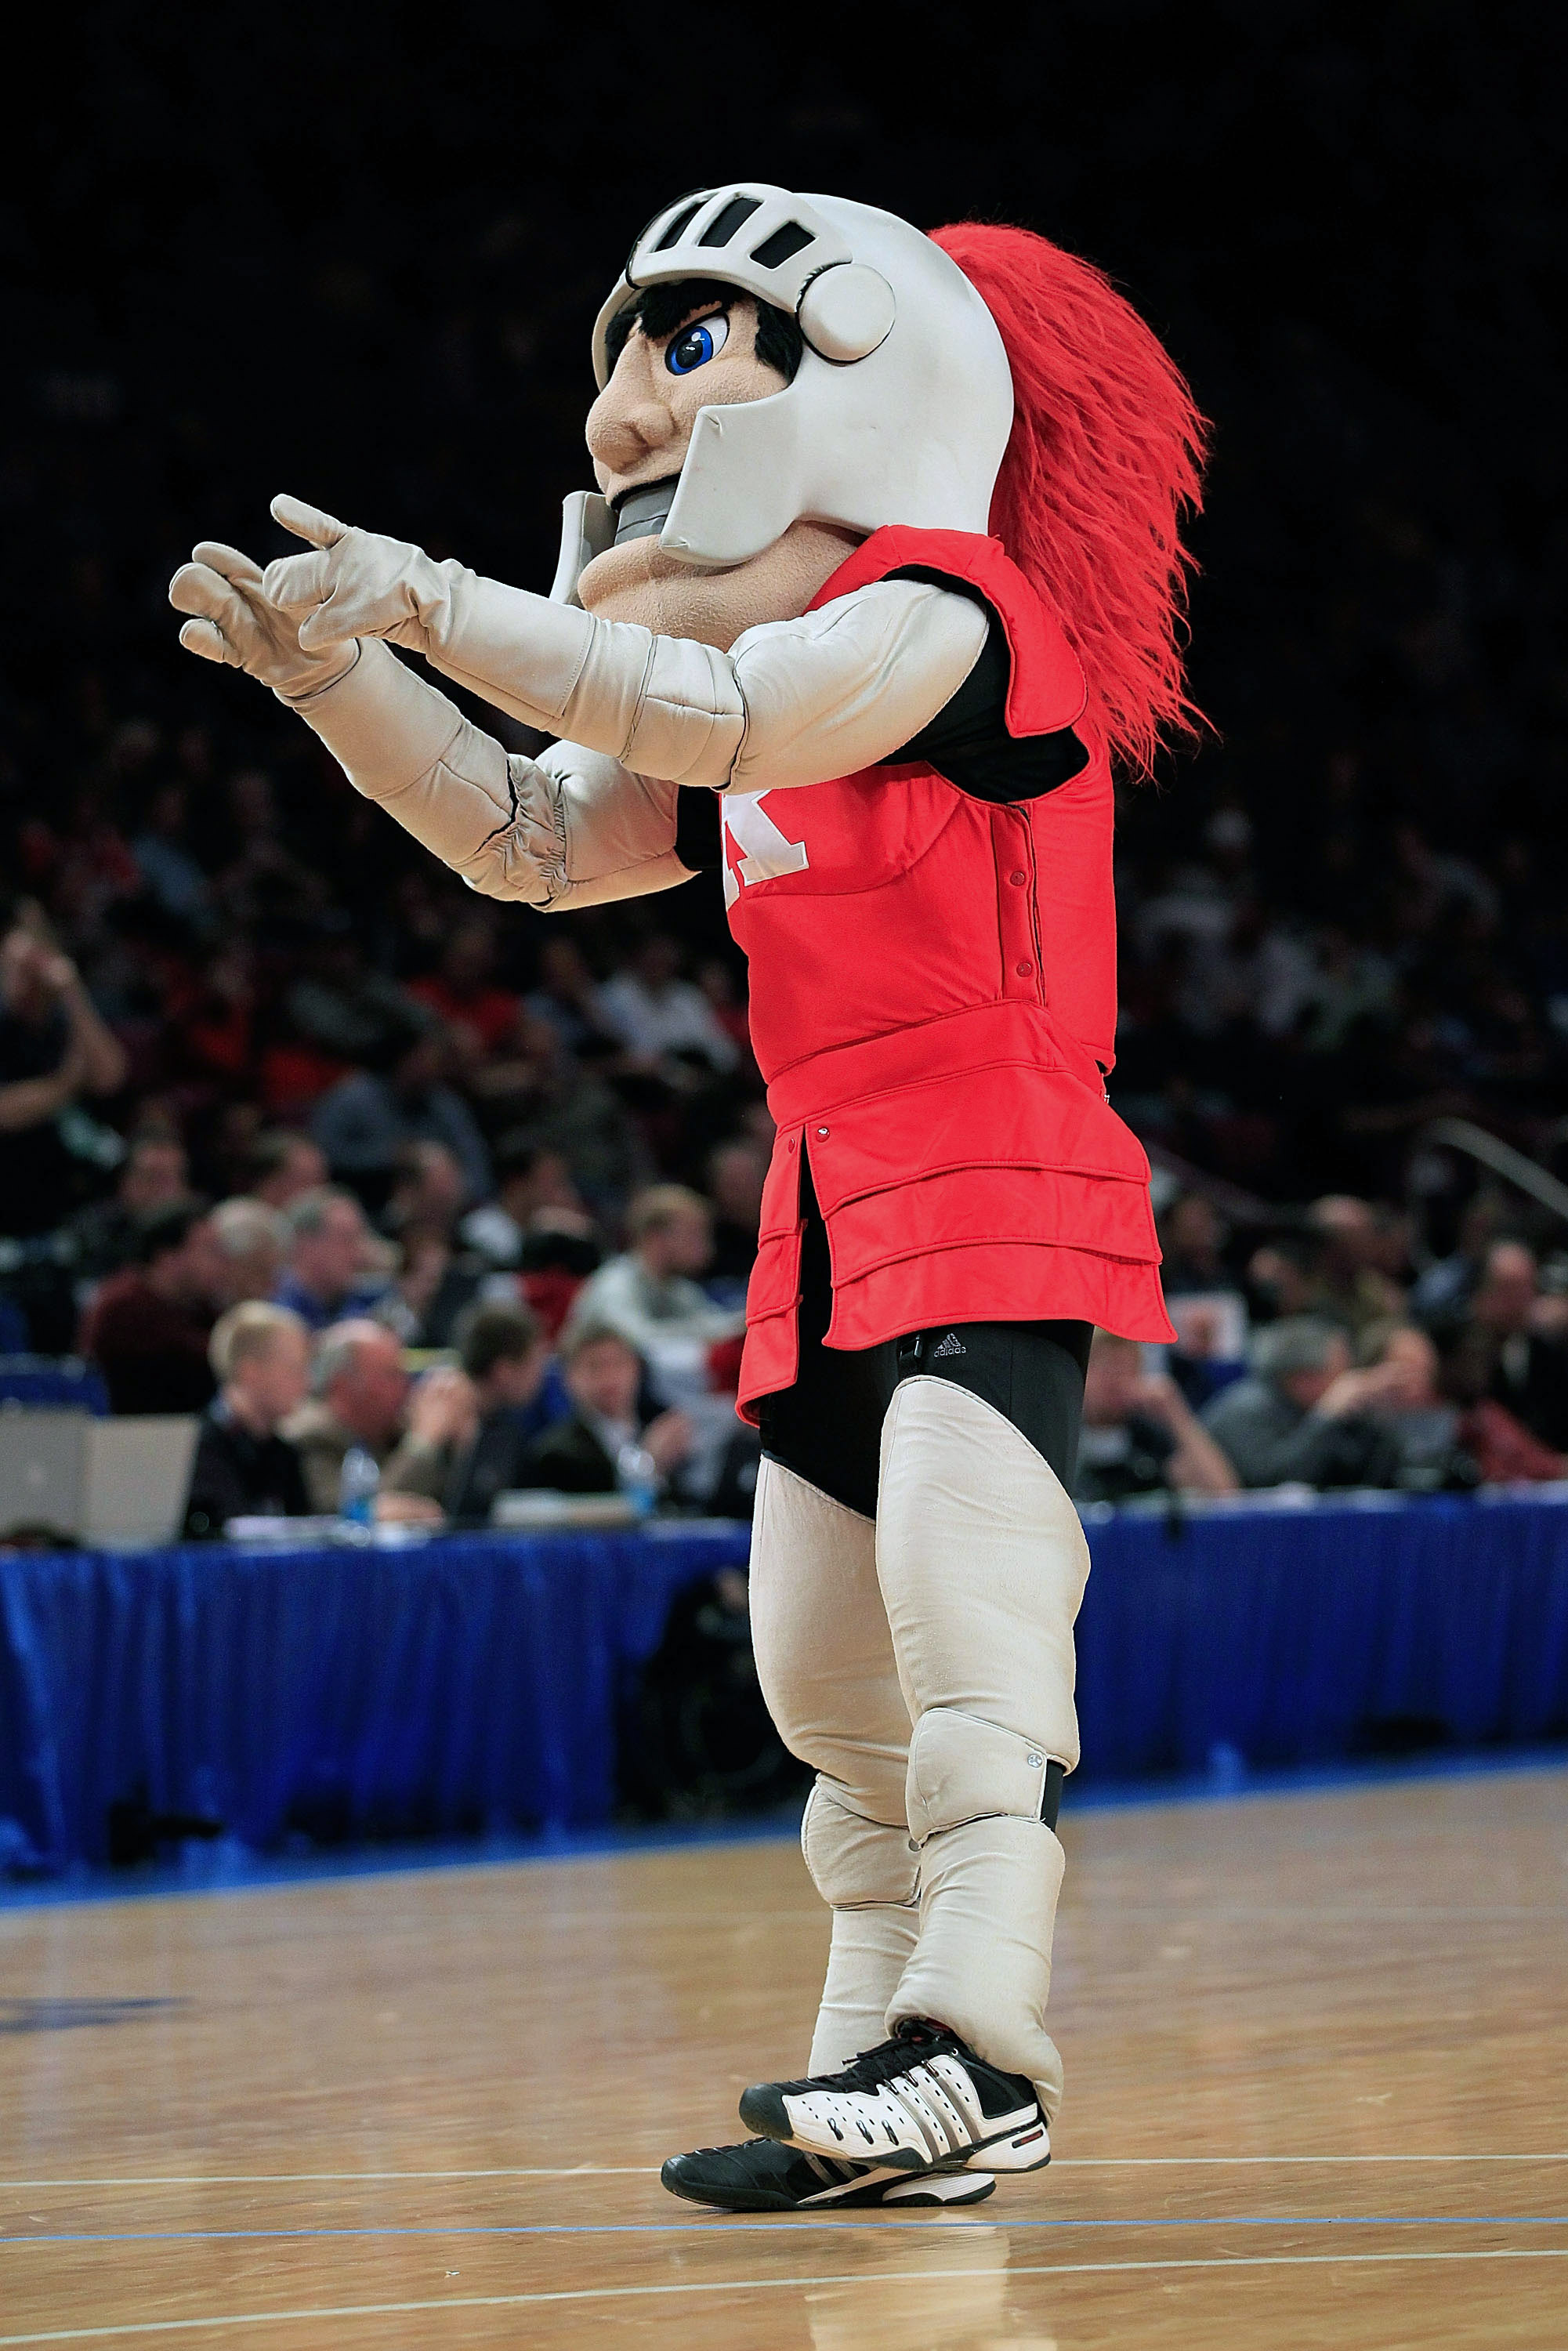 NEW YORK, NY - MARCH 09:  The mascot for the Rutgers Scarlet Knights performs during the game against the St.Johns Red Storm during the second round of the 2011 Big East Men's Basketball Tournament presented by American Eagle Outfitters at Madison Square